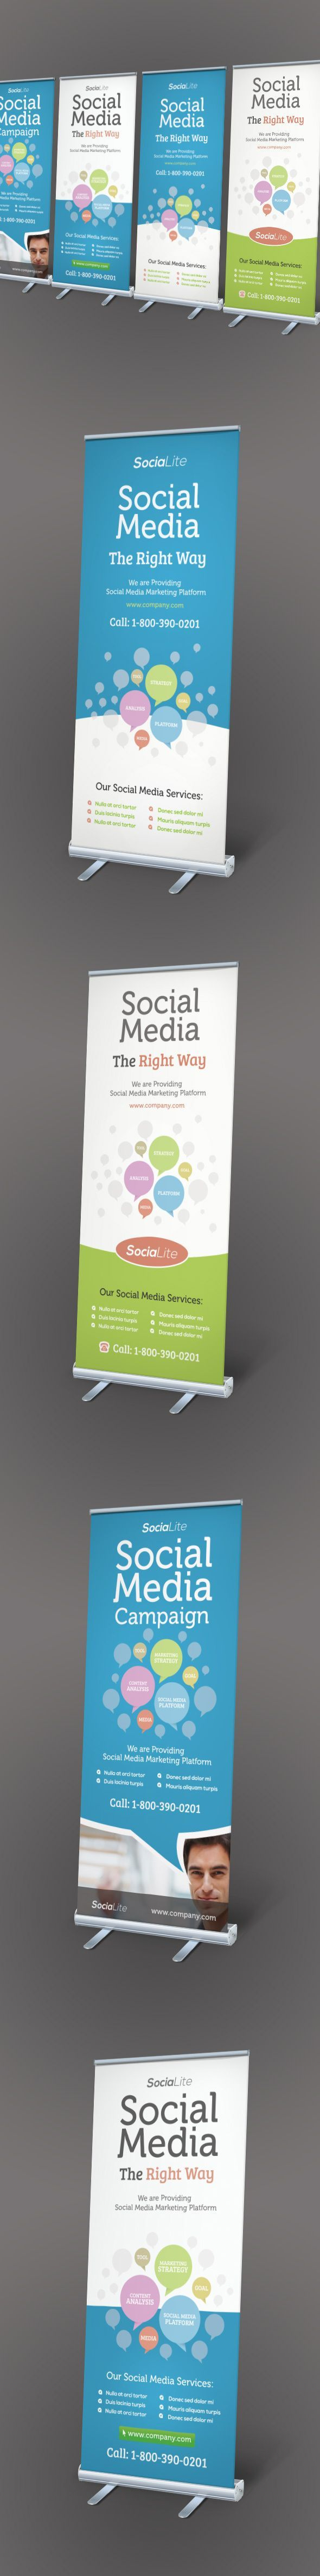 Pin By Tom Whyld On Products Pull Up Banner Design